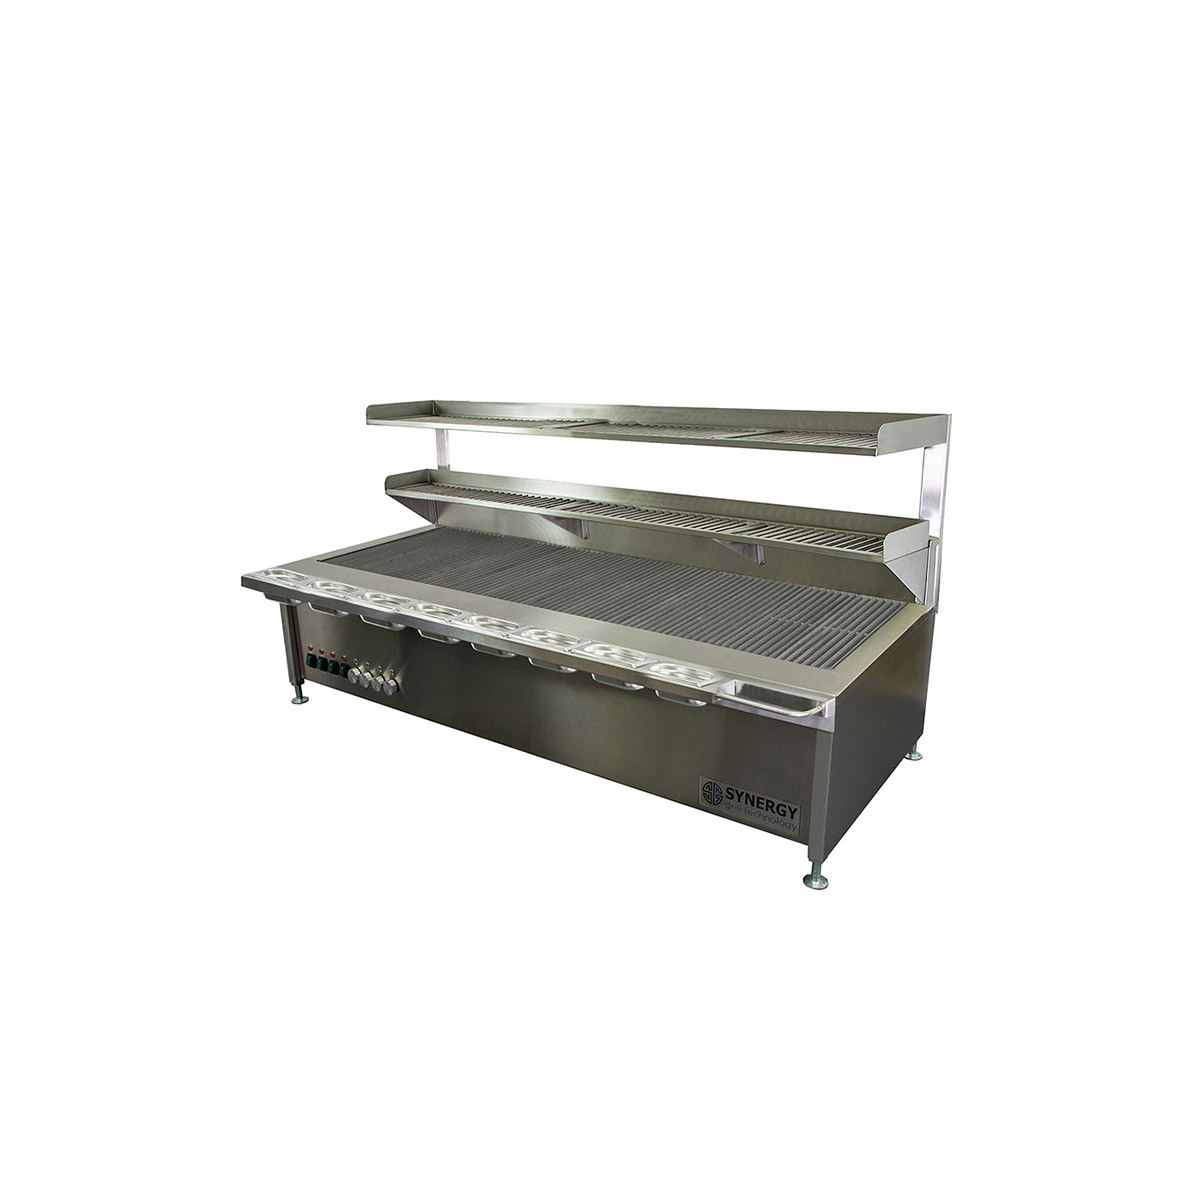 Synergy Trilogy ST1700 Grill with Garnish Rail and Slow Cook Shelf